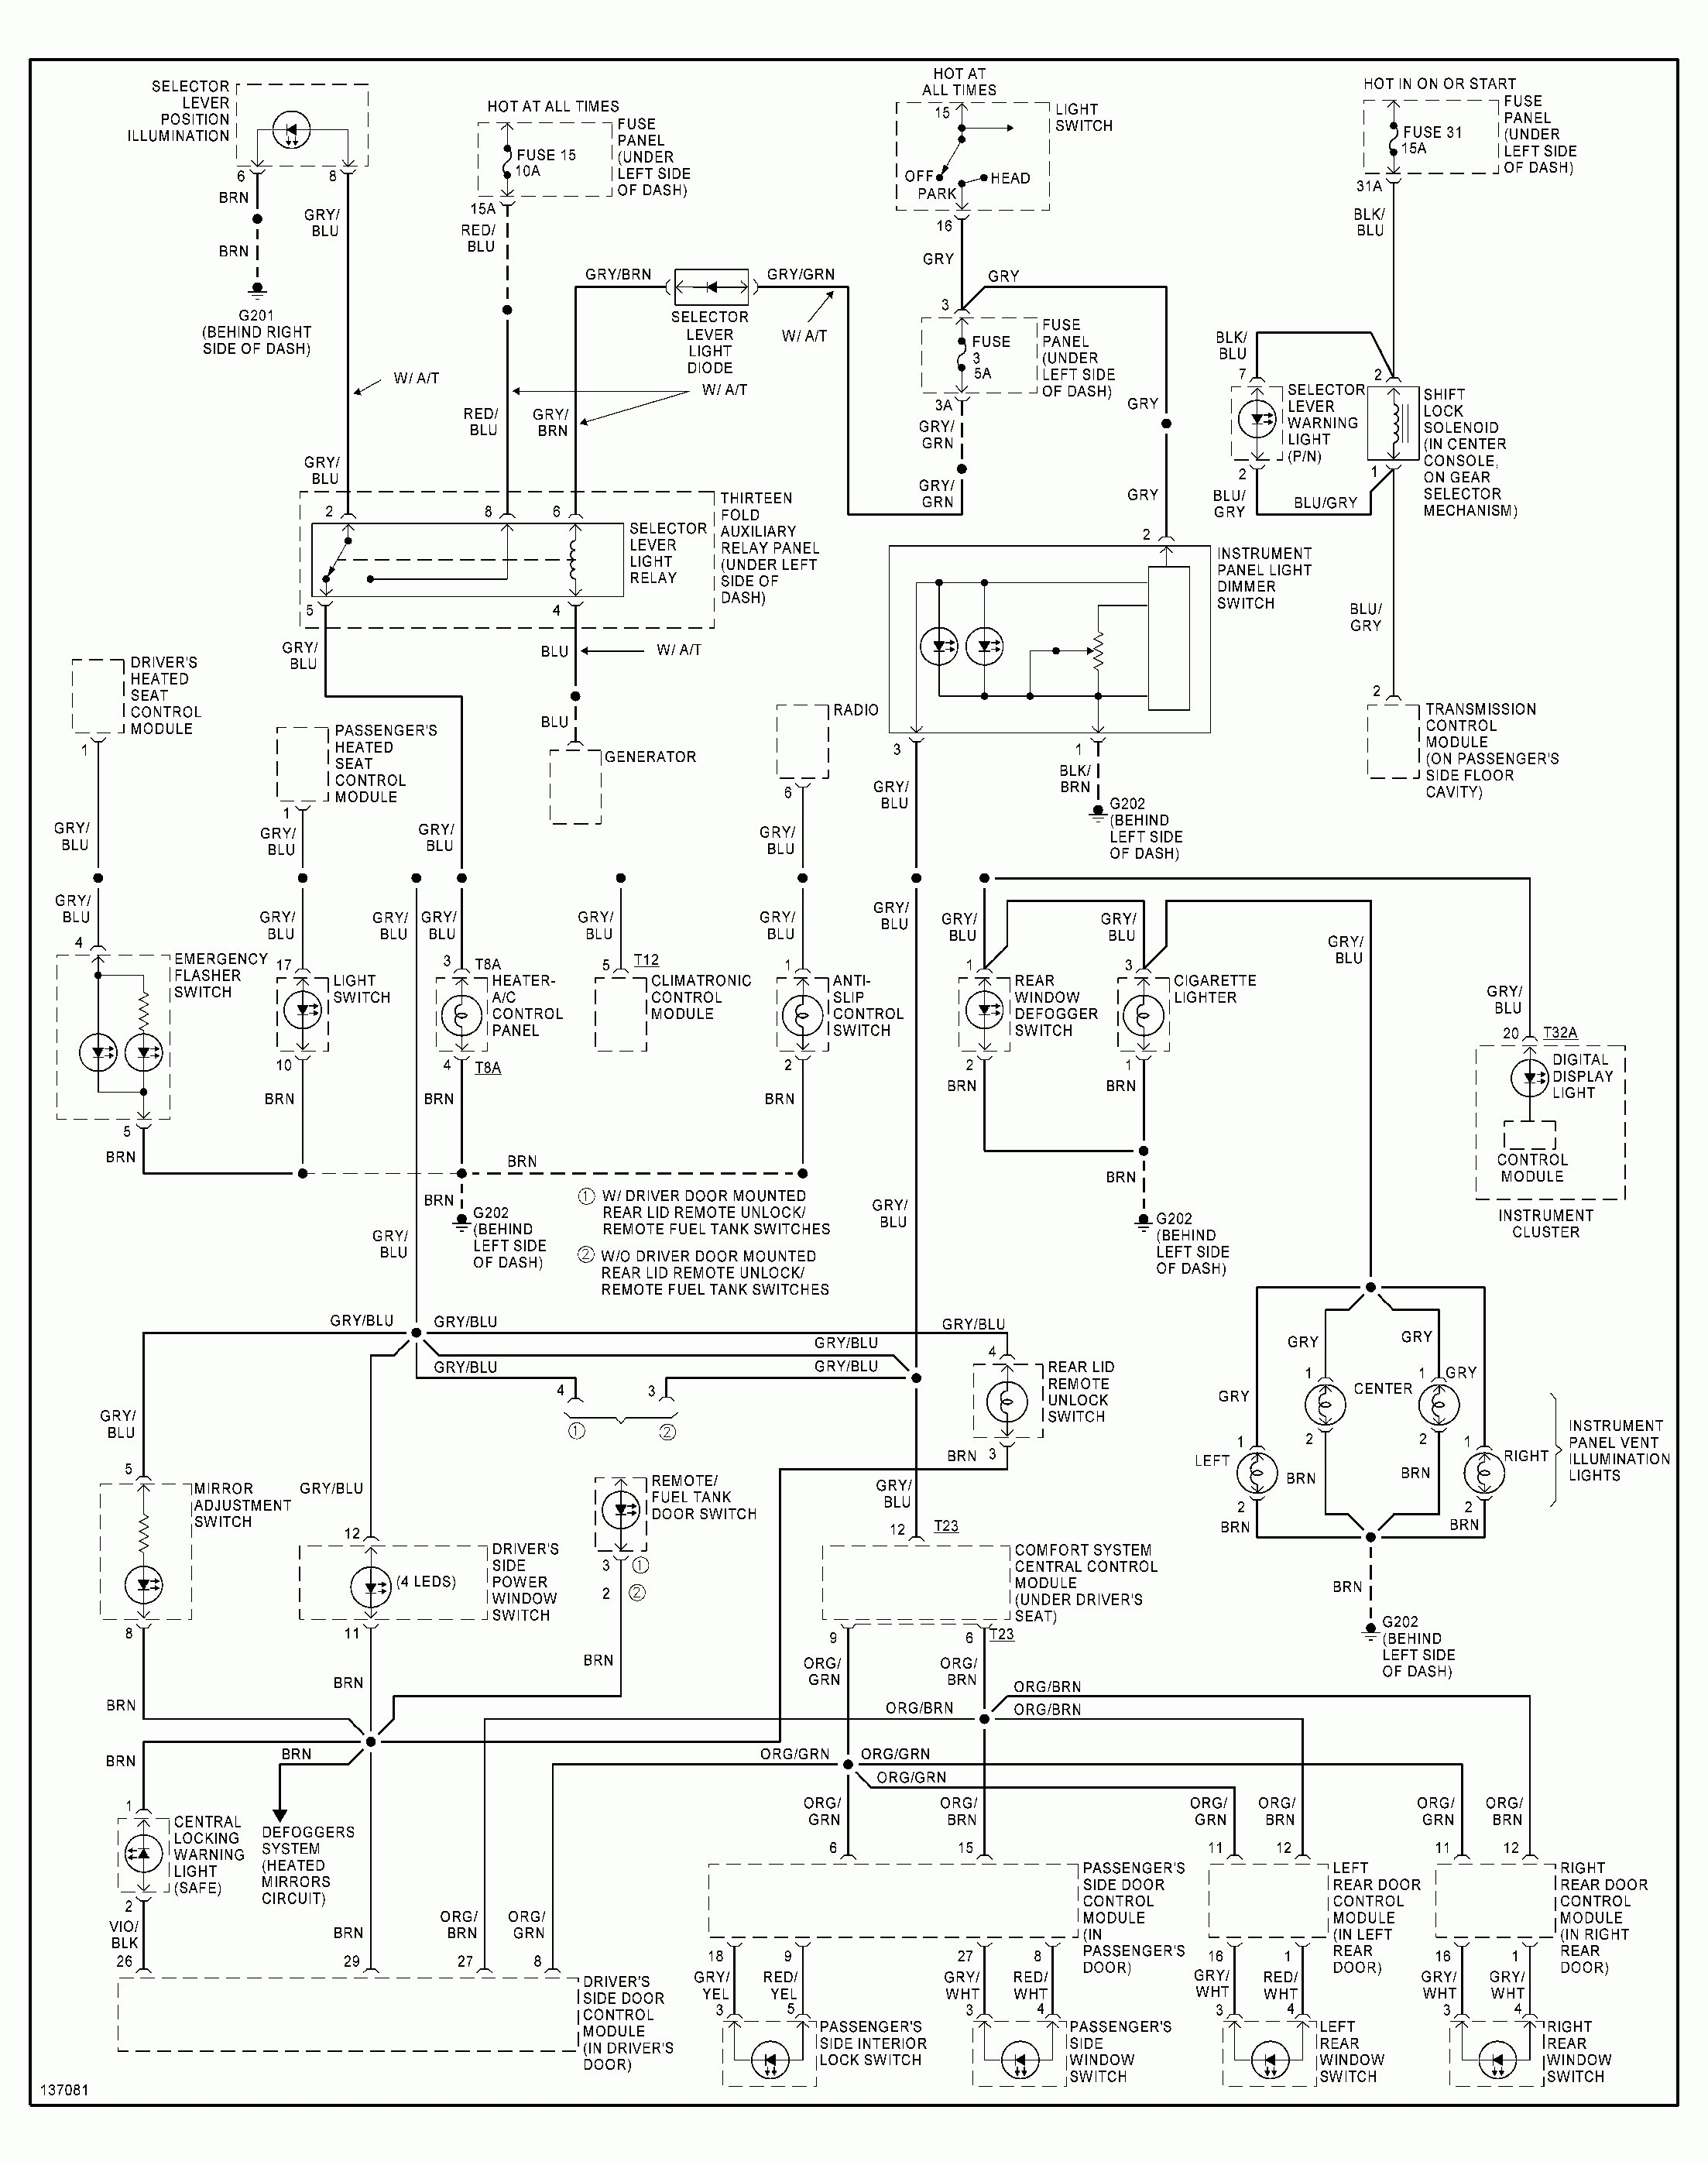 2010 Chrysler town and Country Cooling Wiring Diagram Diagram] Volkswagen Vw Golf Jetta Mk3 A3 Wiring Diagram Of 2010 Chrysler town and Country Cooling Wiring Diagram